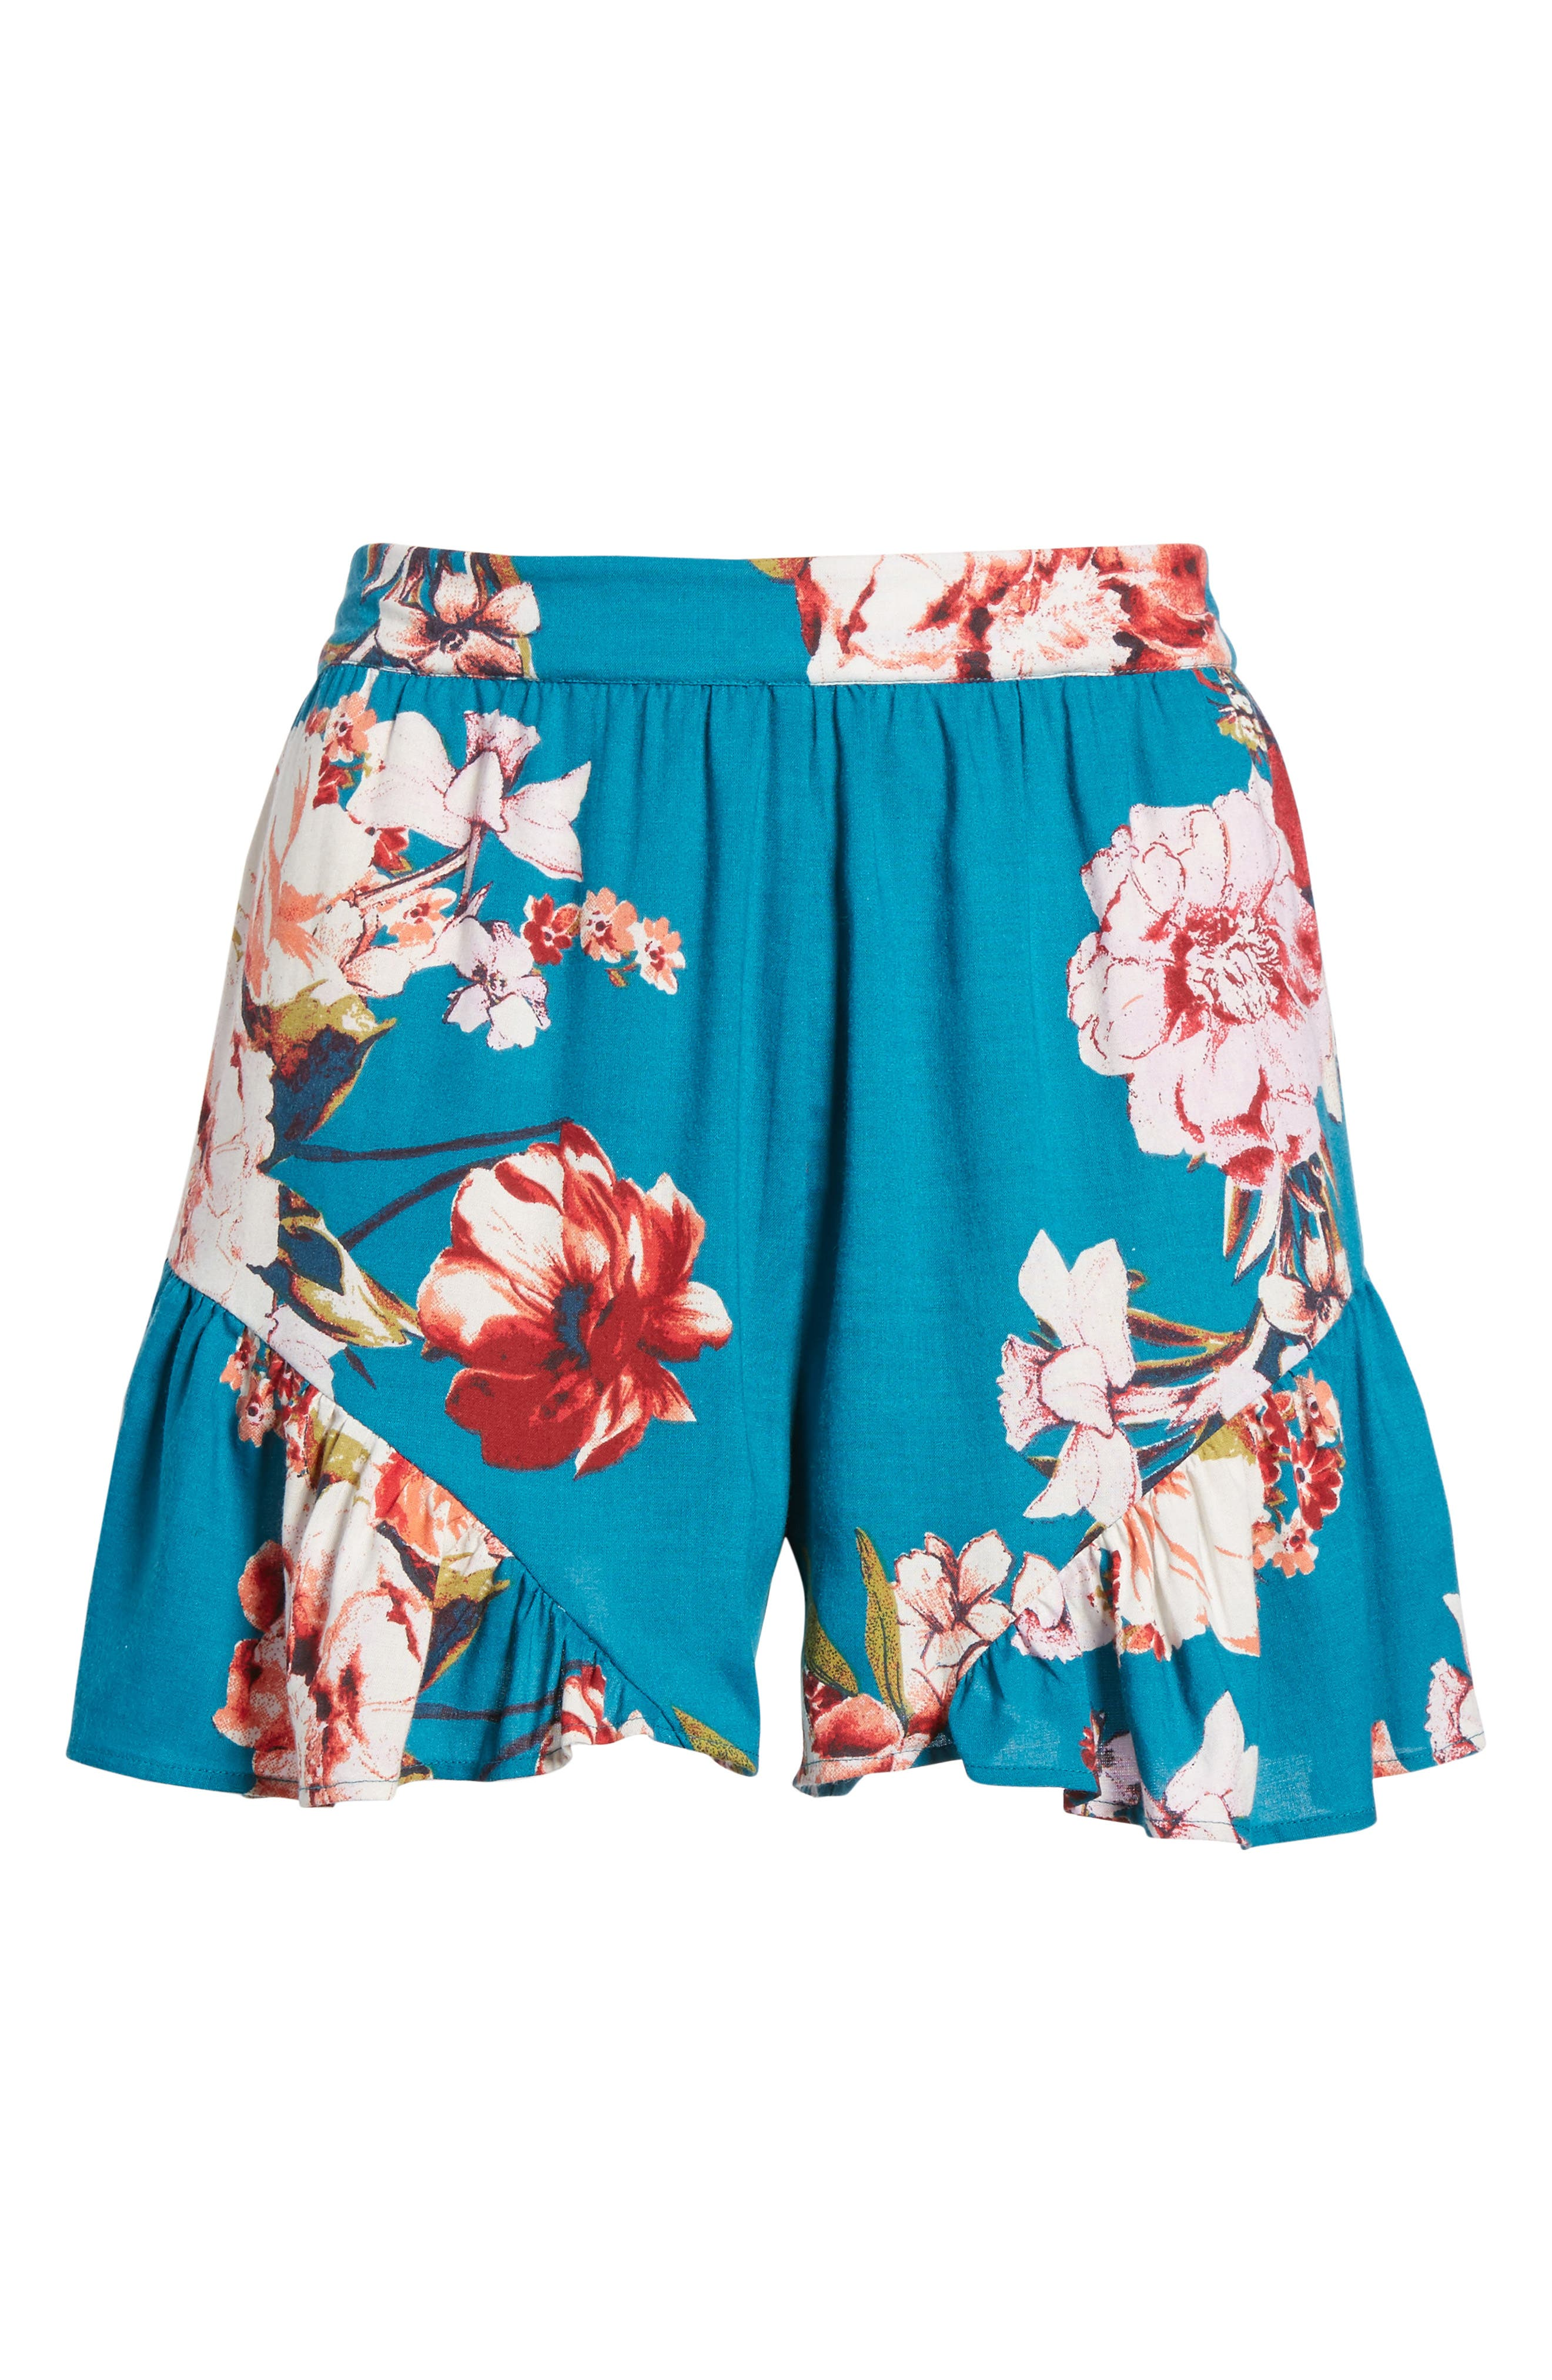 Floral Print Ruffle Hem Shorts,                             Alternate thumbnail 7, color,                             Teal/ Peach